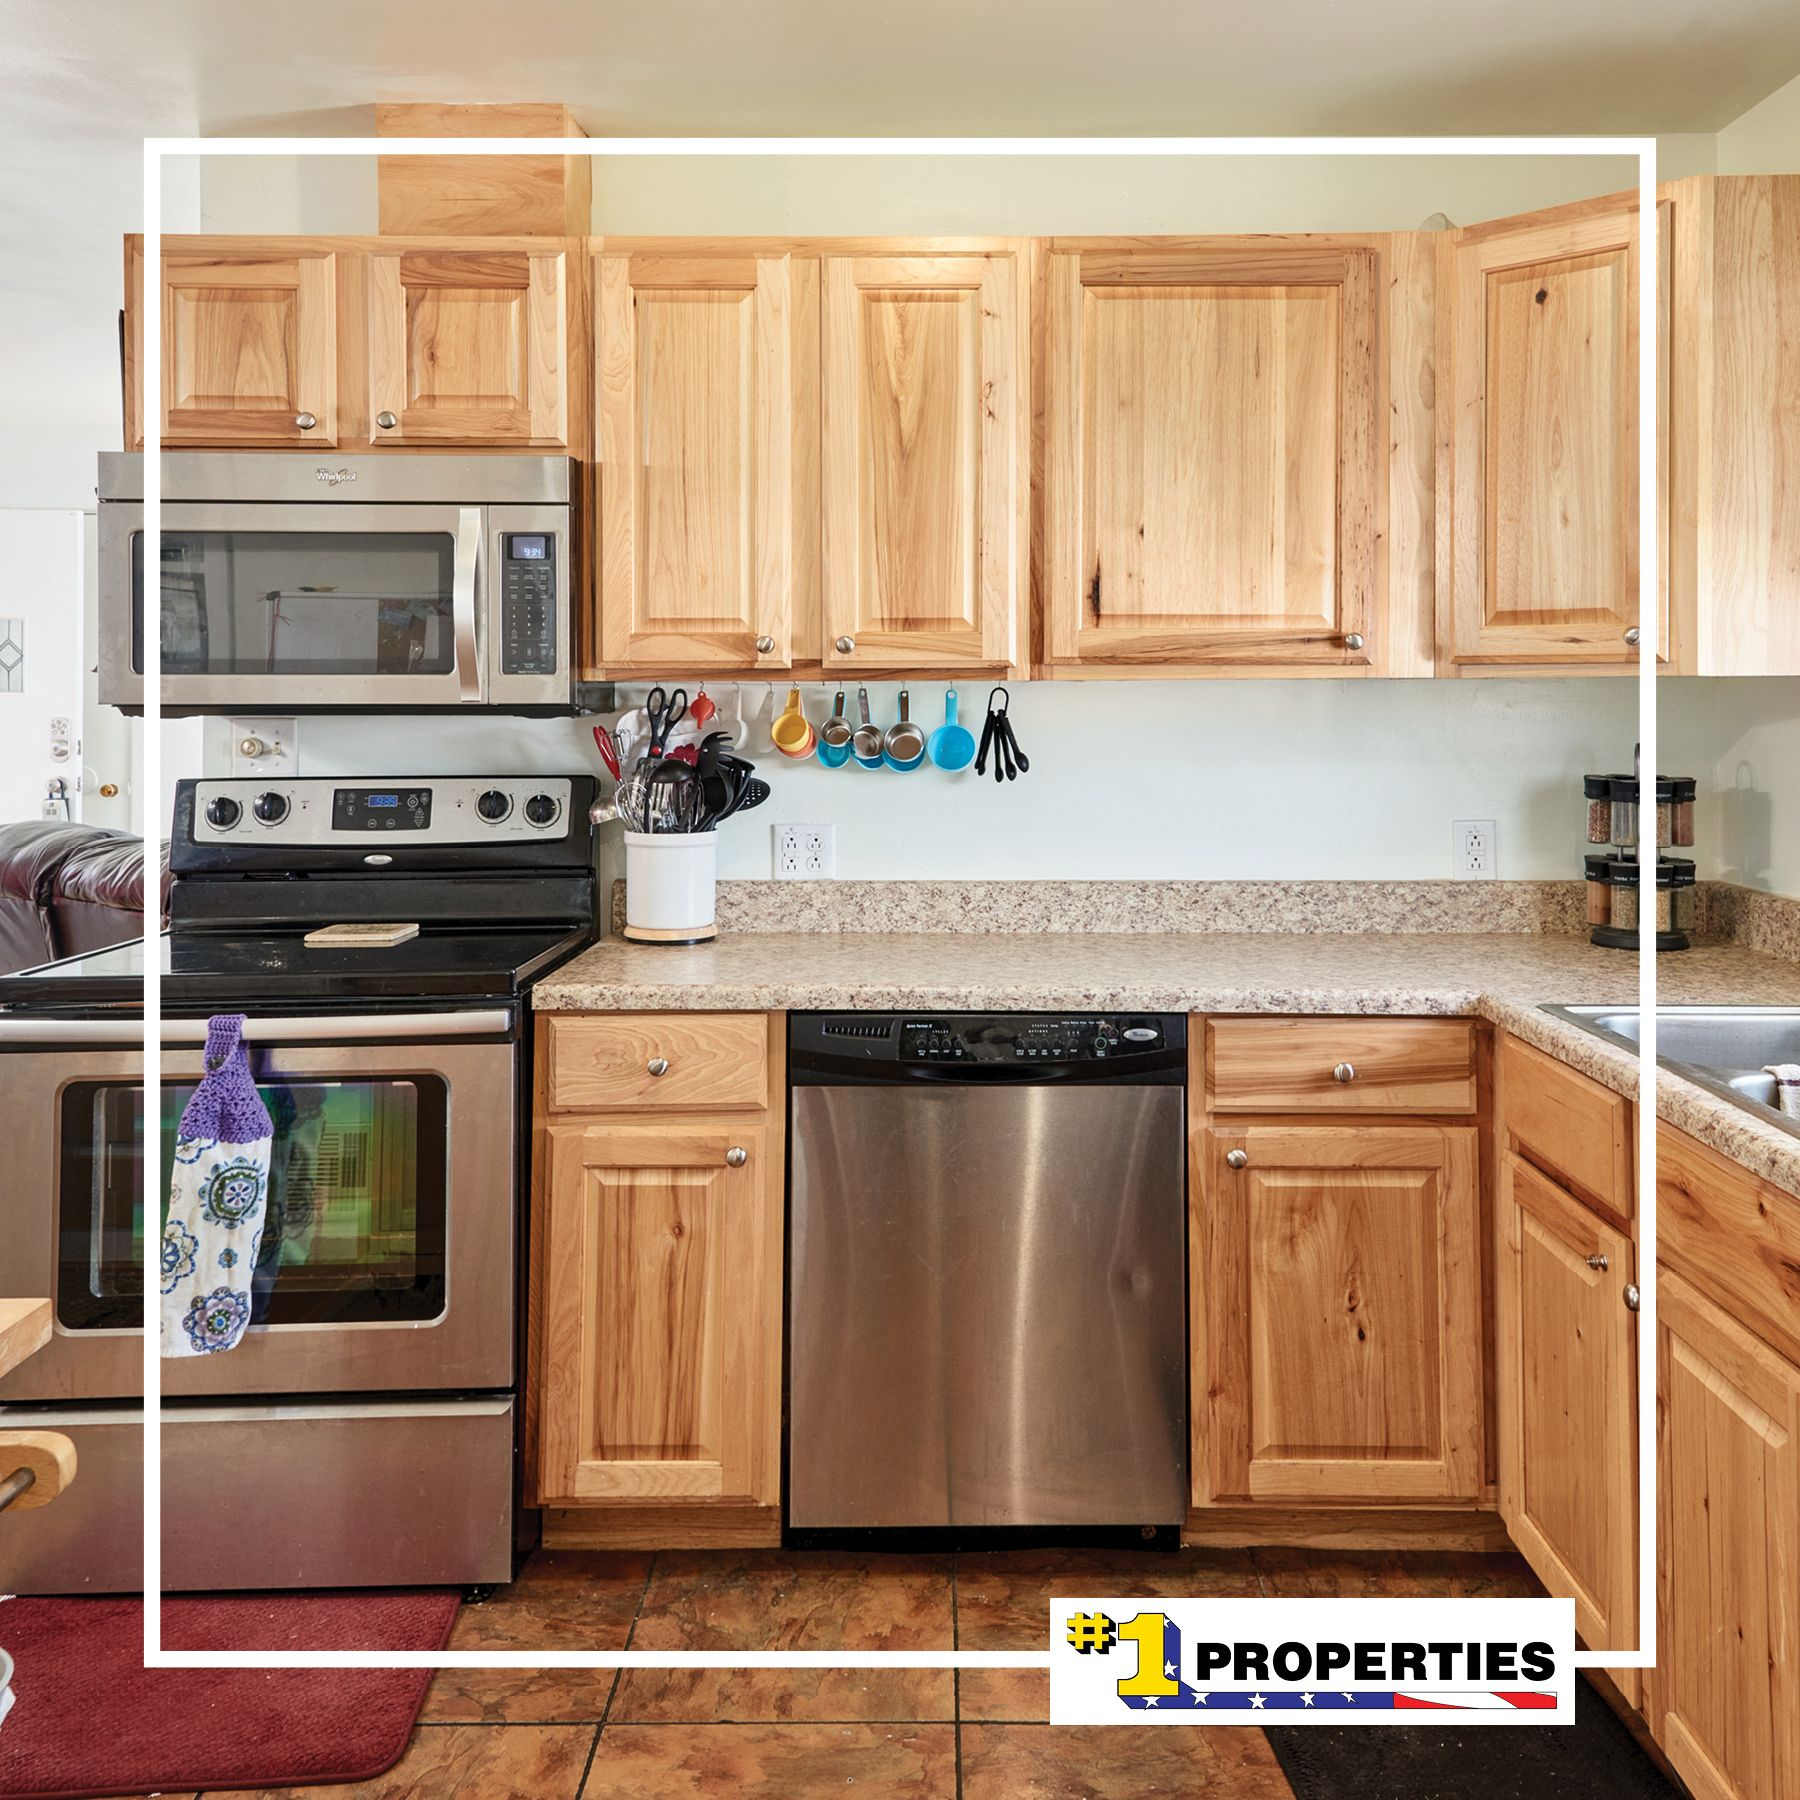 Beautiful Hickory Cabinets 4772 Hilltop Avenue Cheyenne Wyoming Cheyennehomes Realestate Househunting Realty In 2020 Hickory Cabinets Dream Kitchen Real Estate